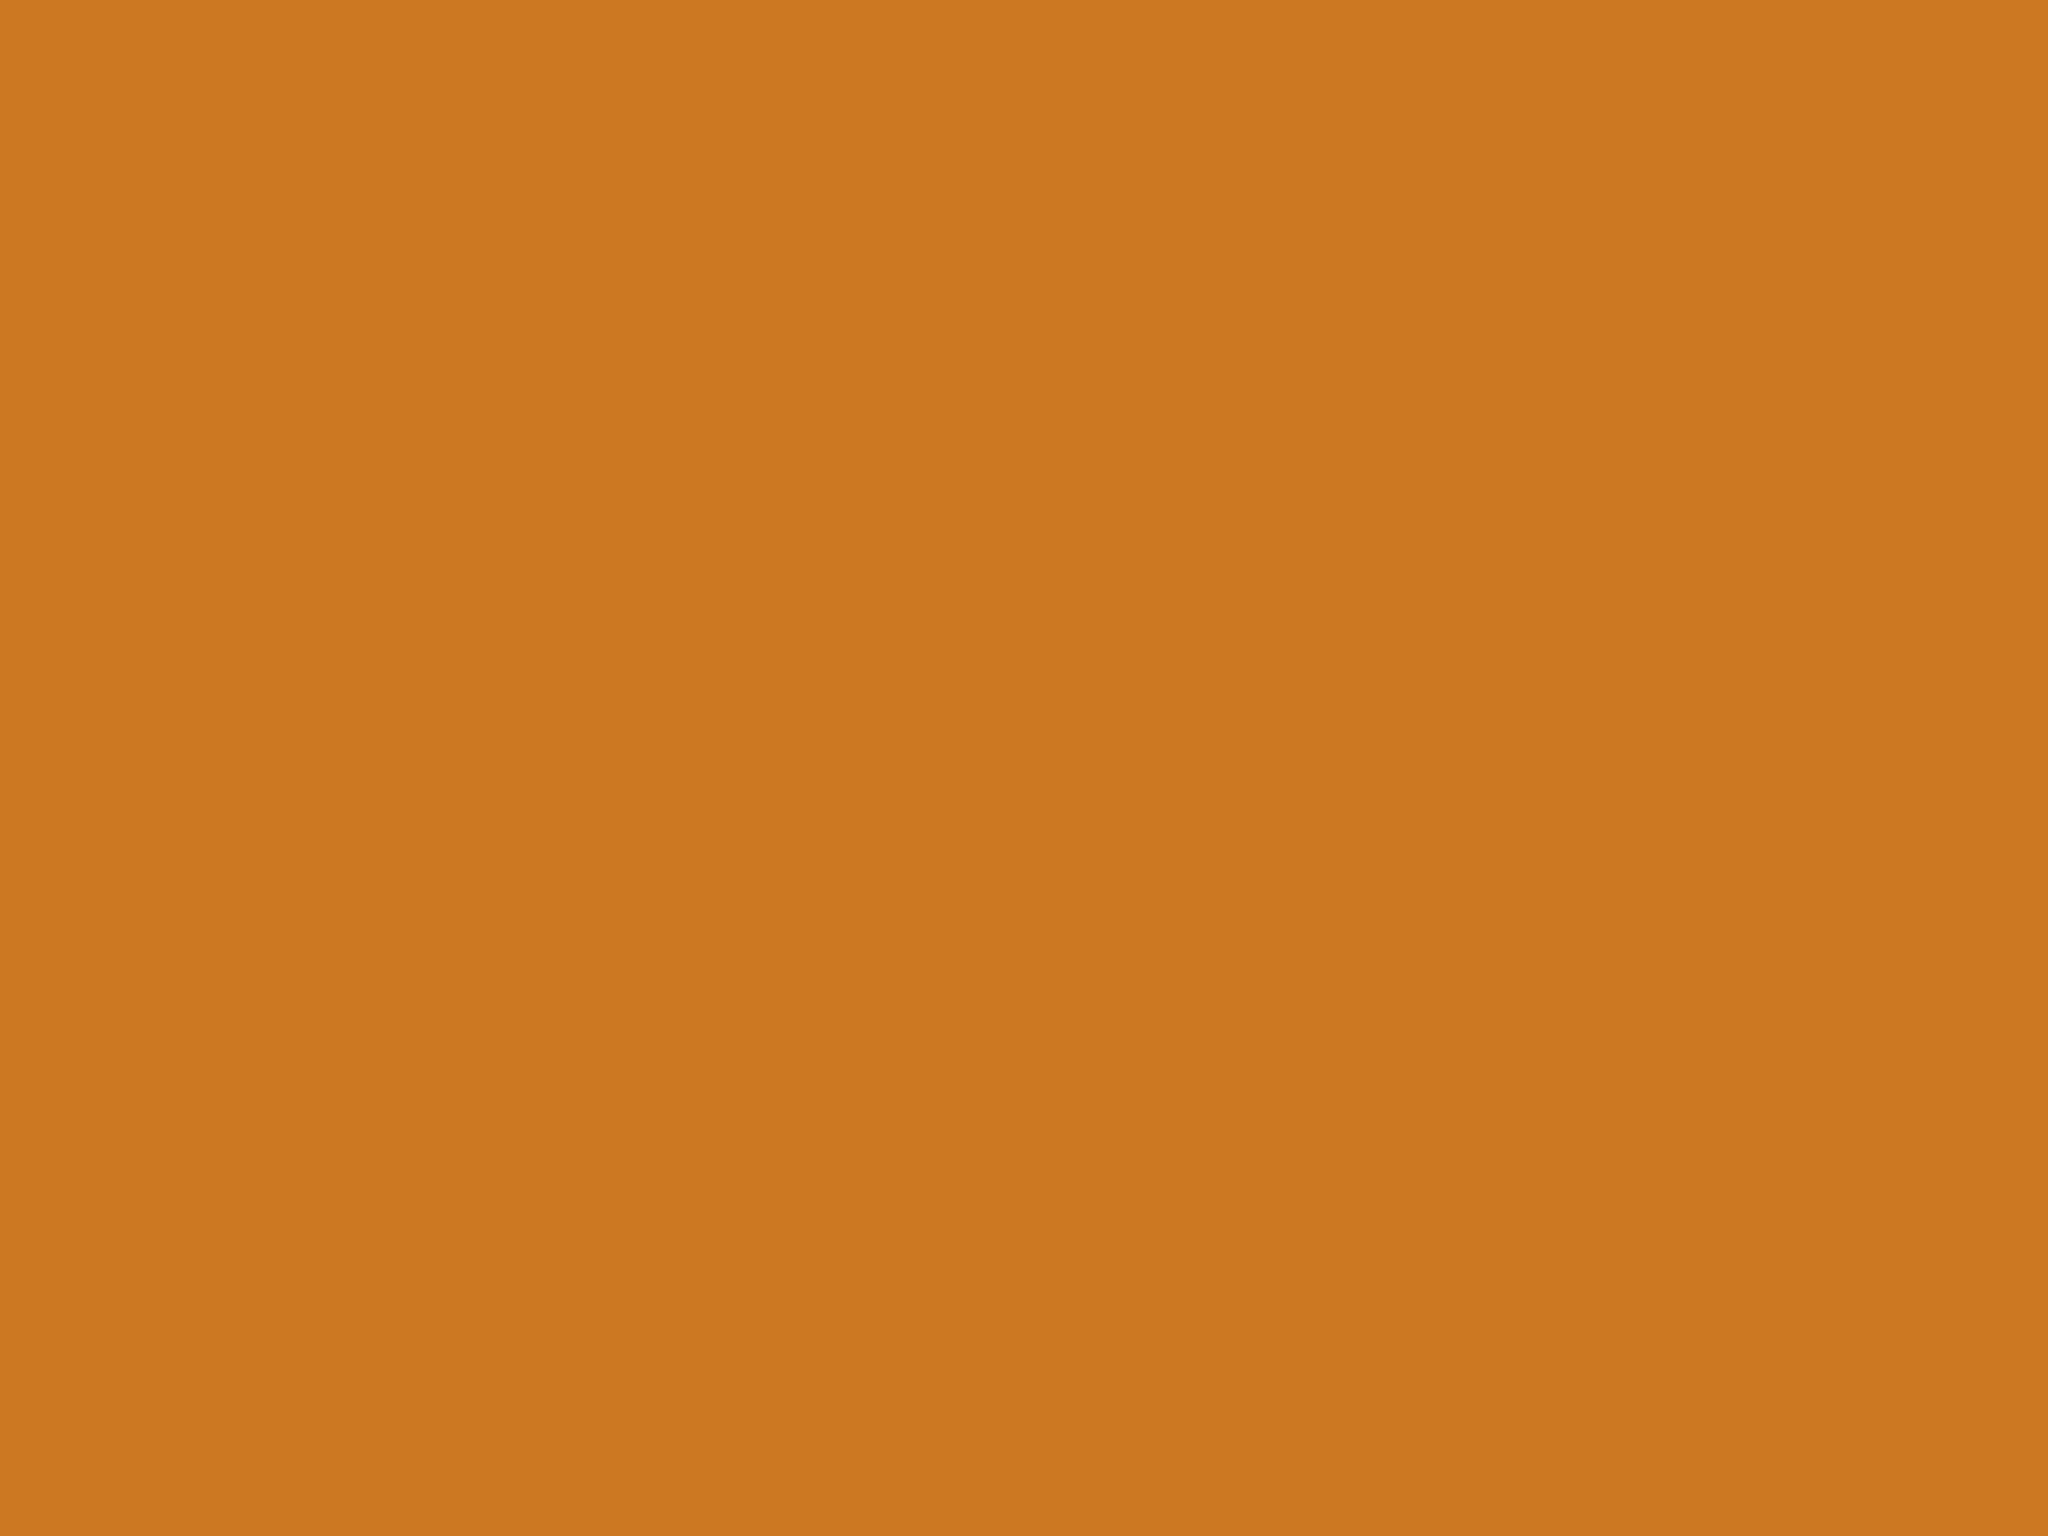 2048x1536 Ochre Solid Color Background